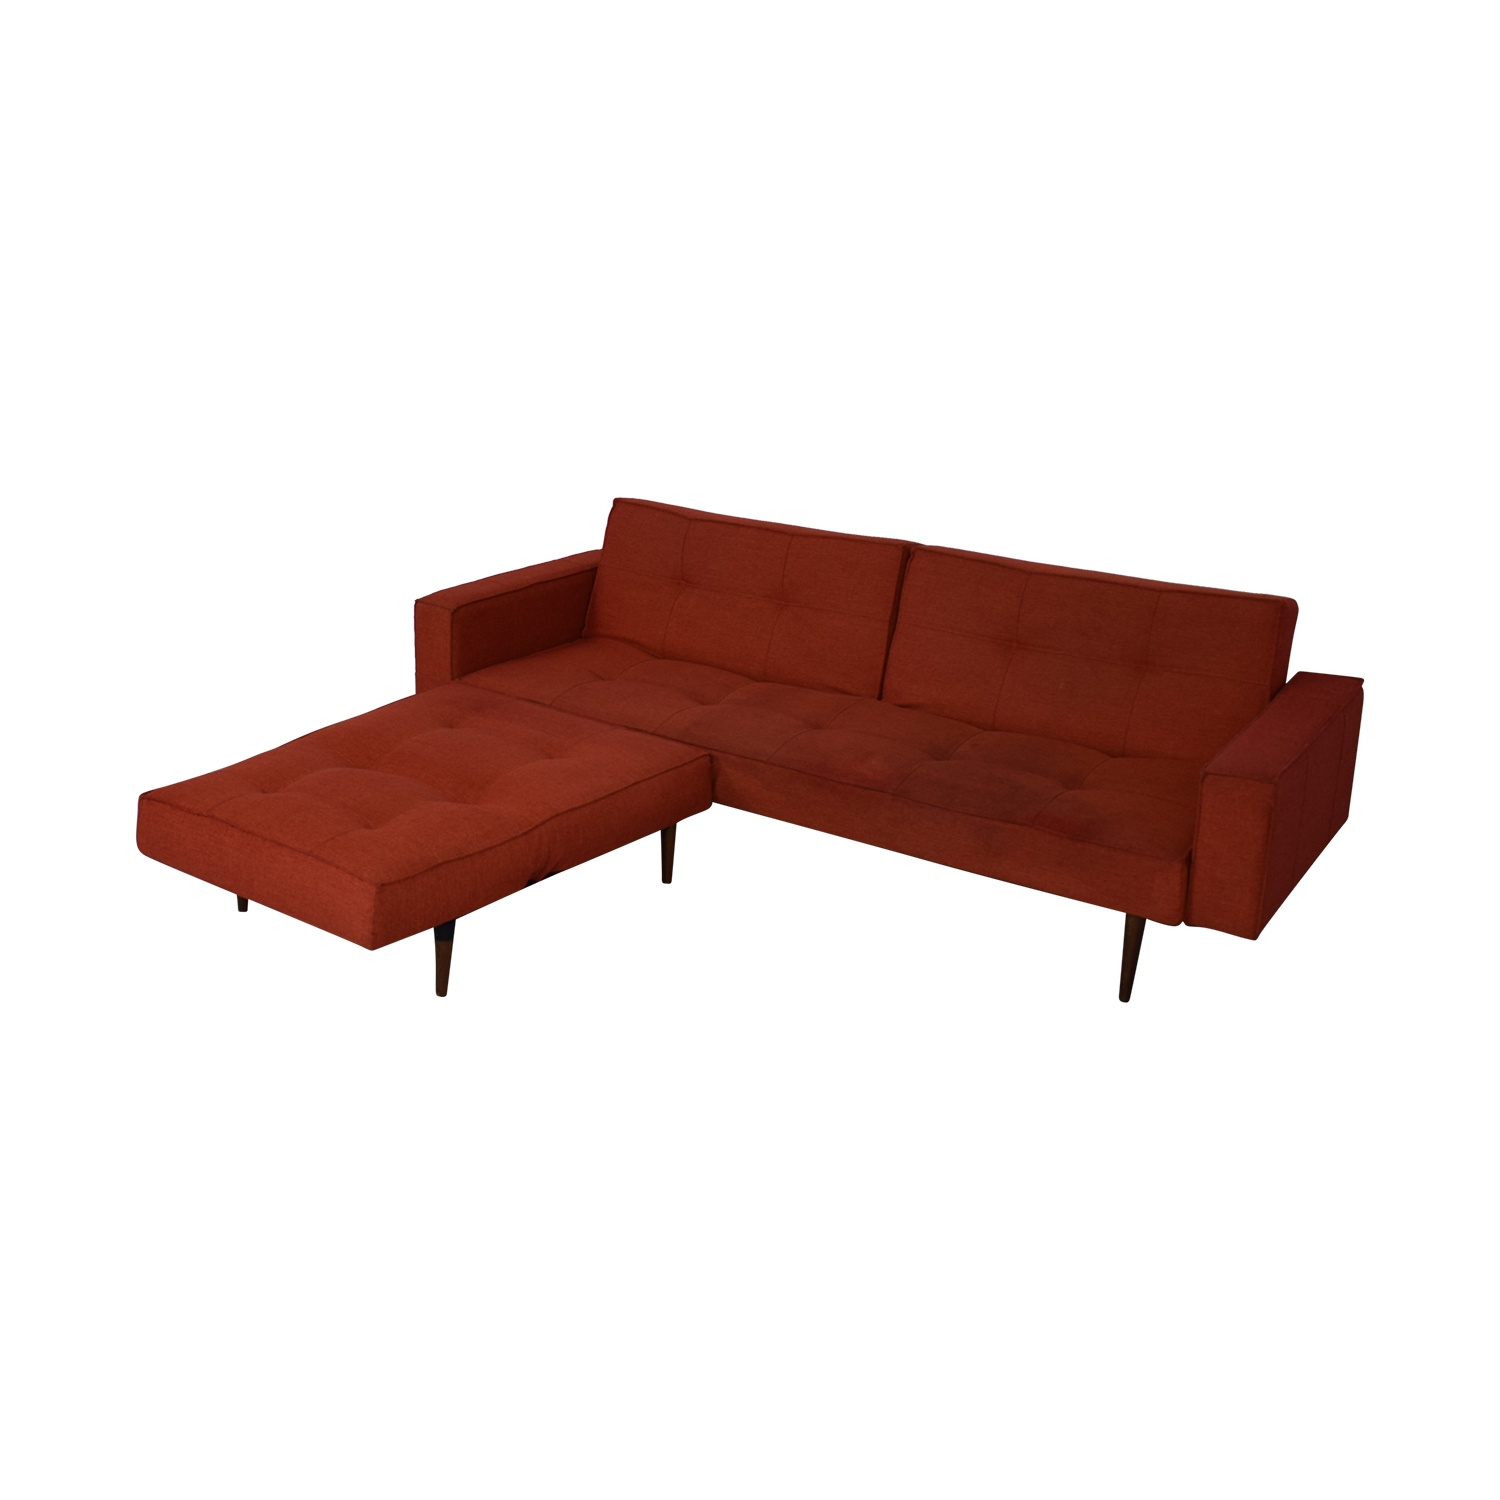 79% OFF - Innovation Living Innovation Living Convertible Sofa with  Convertible Ottoman / Sofas